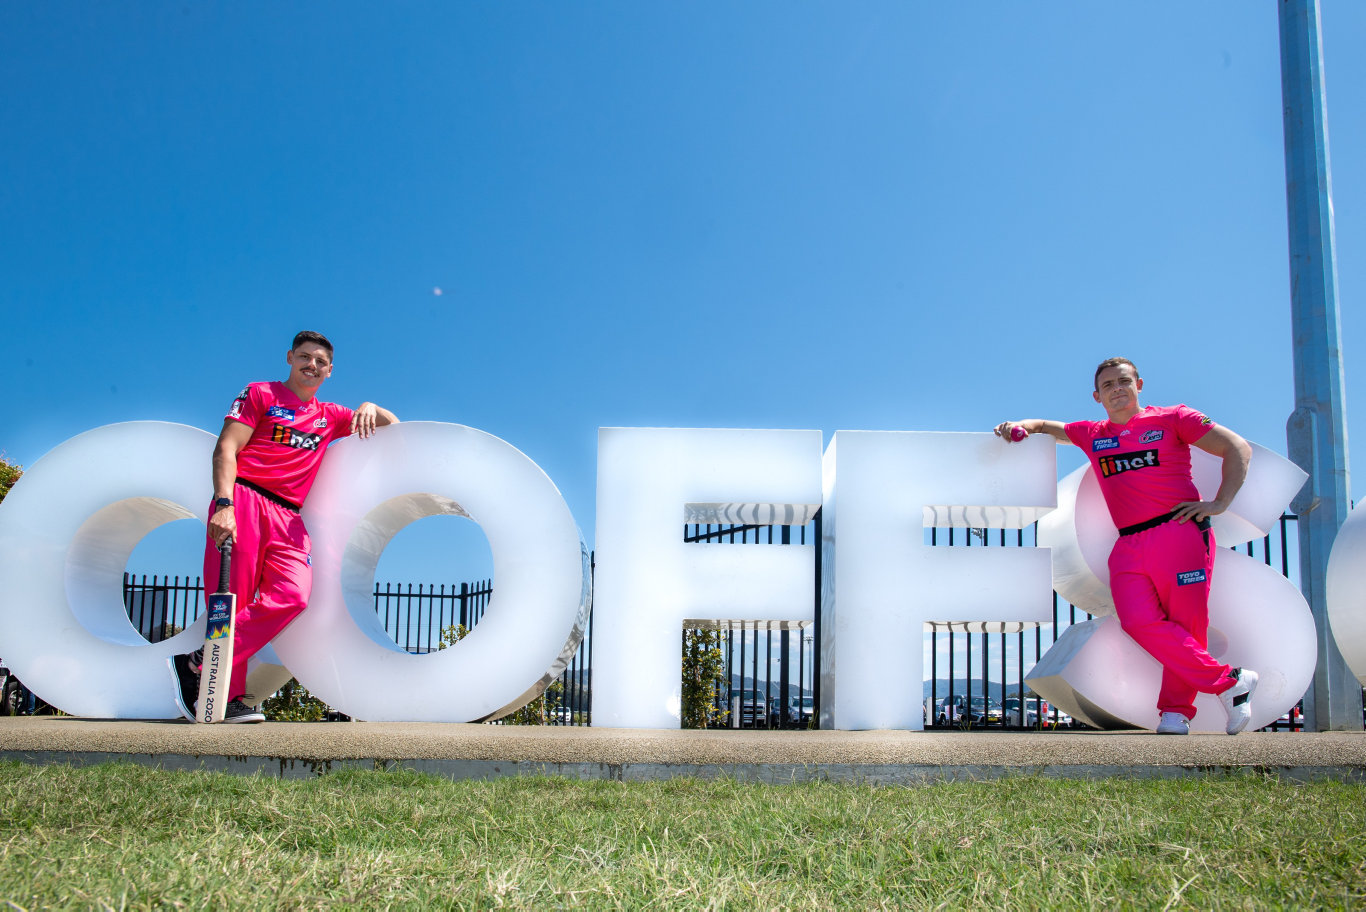 READY TO FIRE: Sydney Sixers stars Ben Dwarshuis and Steve O'Keefe in Coffs Harbour to promote the match.